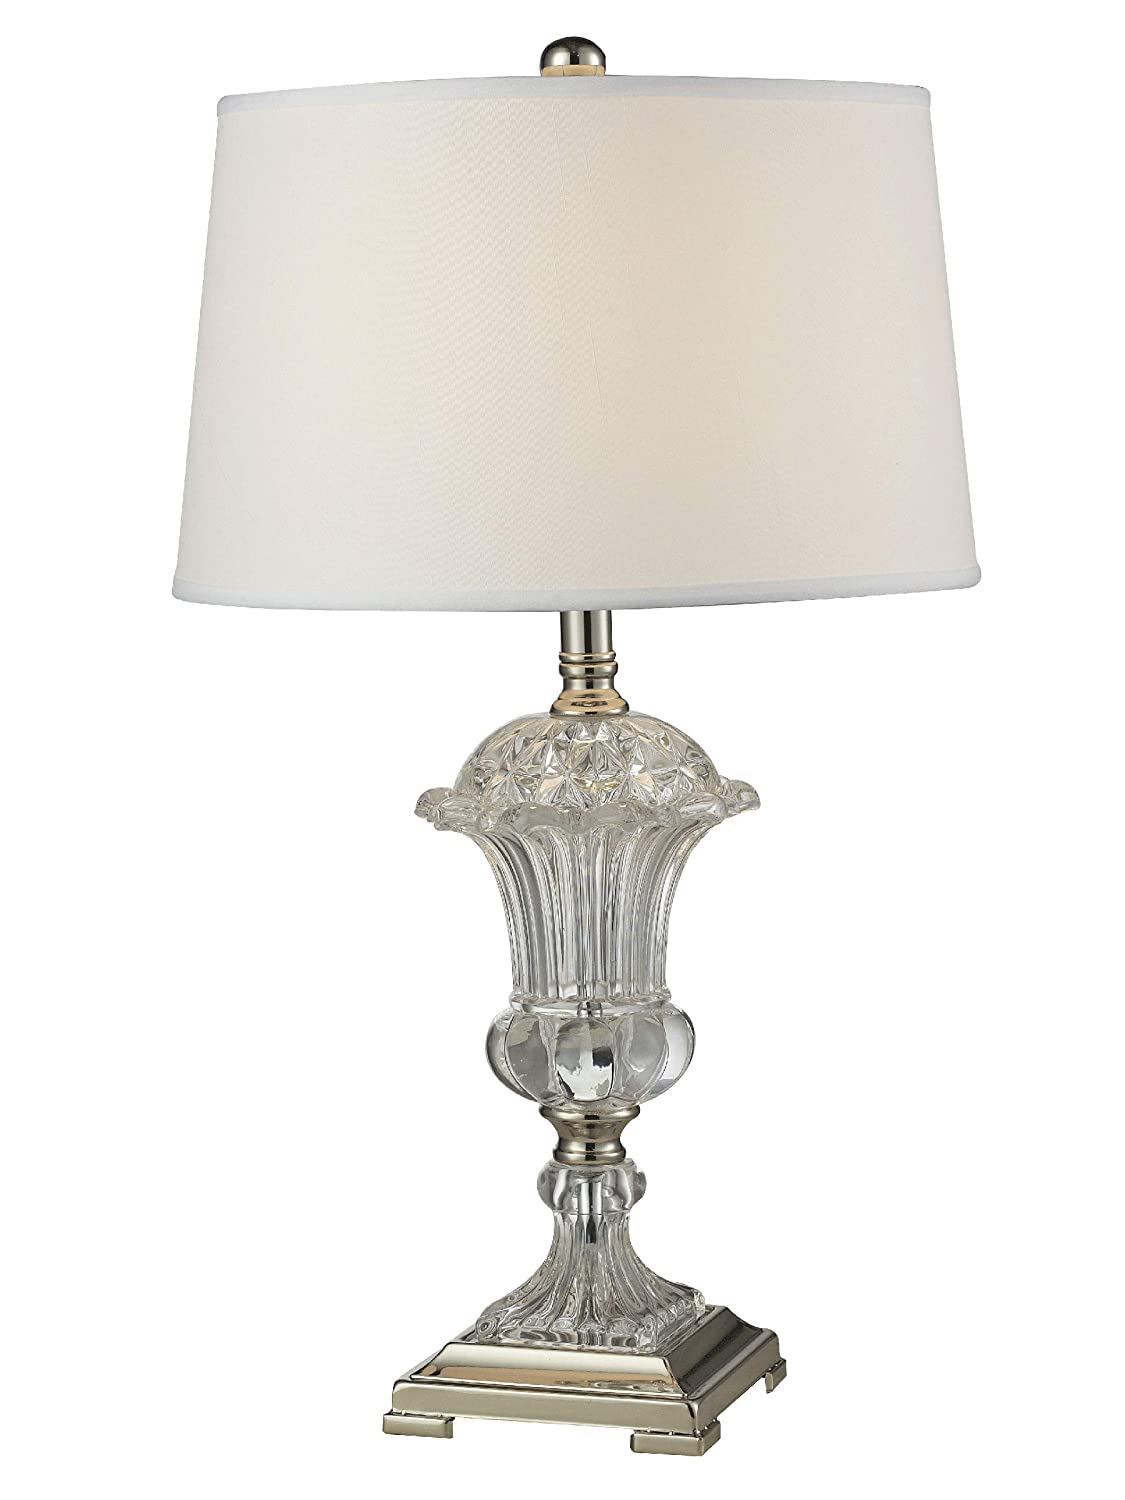 Dale Tiffany Gt14268 Crystal Orb Table Lamp Polished Nickel